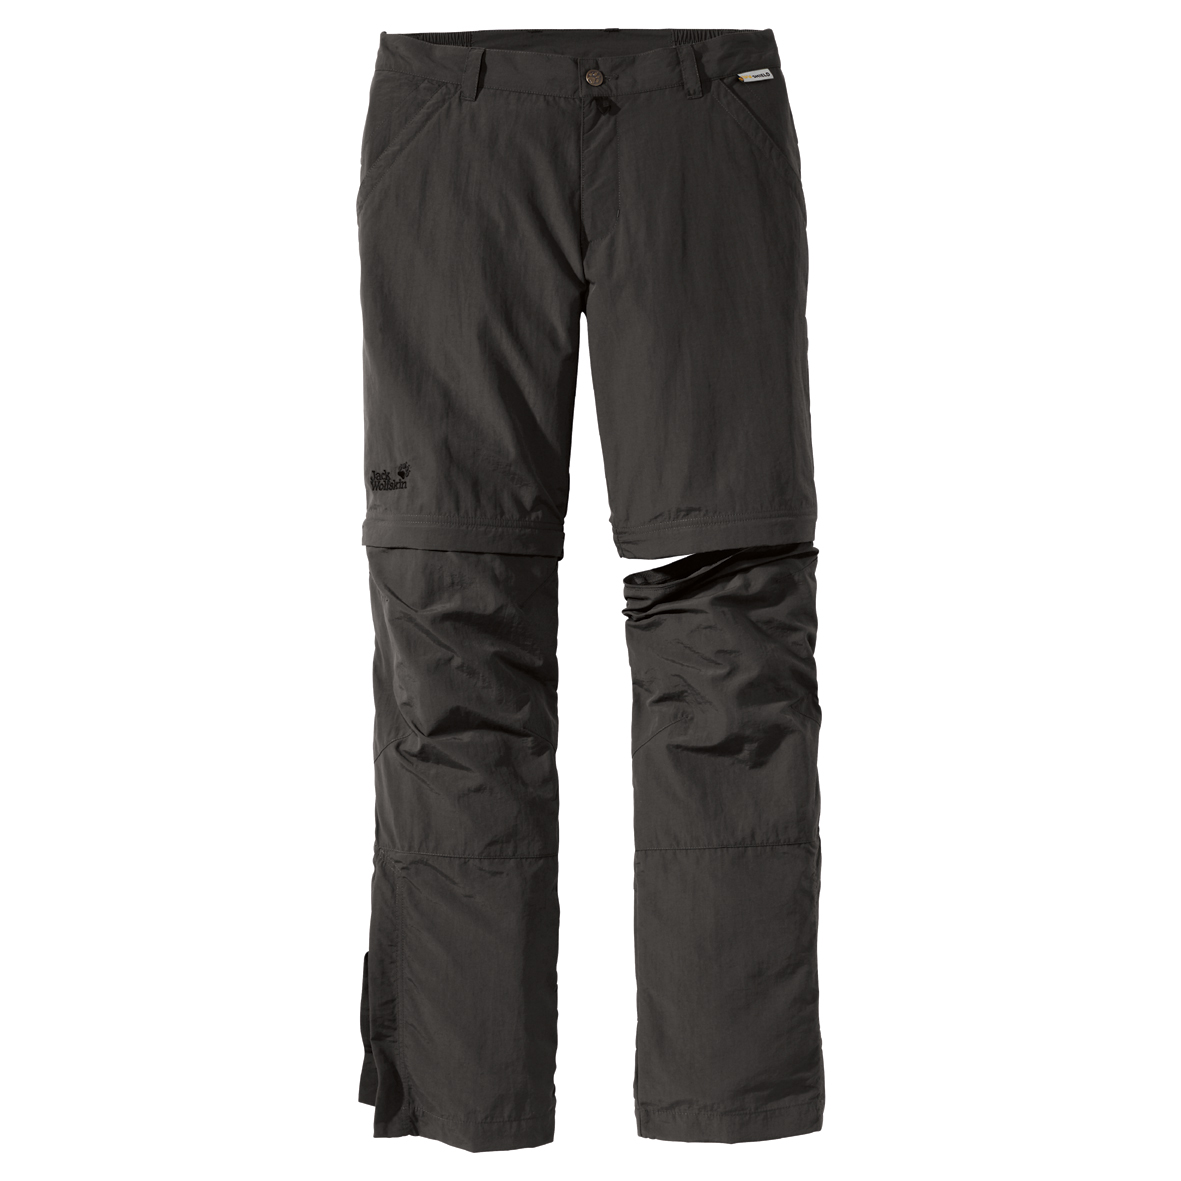 JACK WOLFSKIN MEN CANYON ZIP OFF PANTS OLIVE BROWN